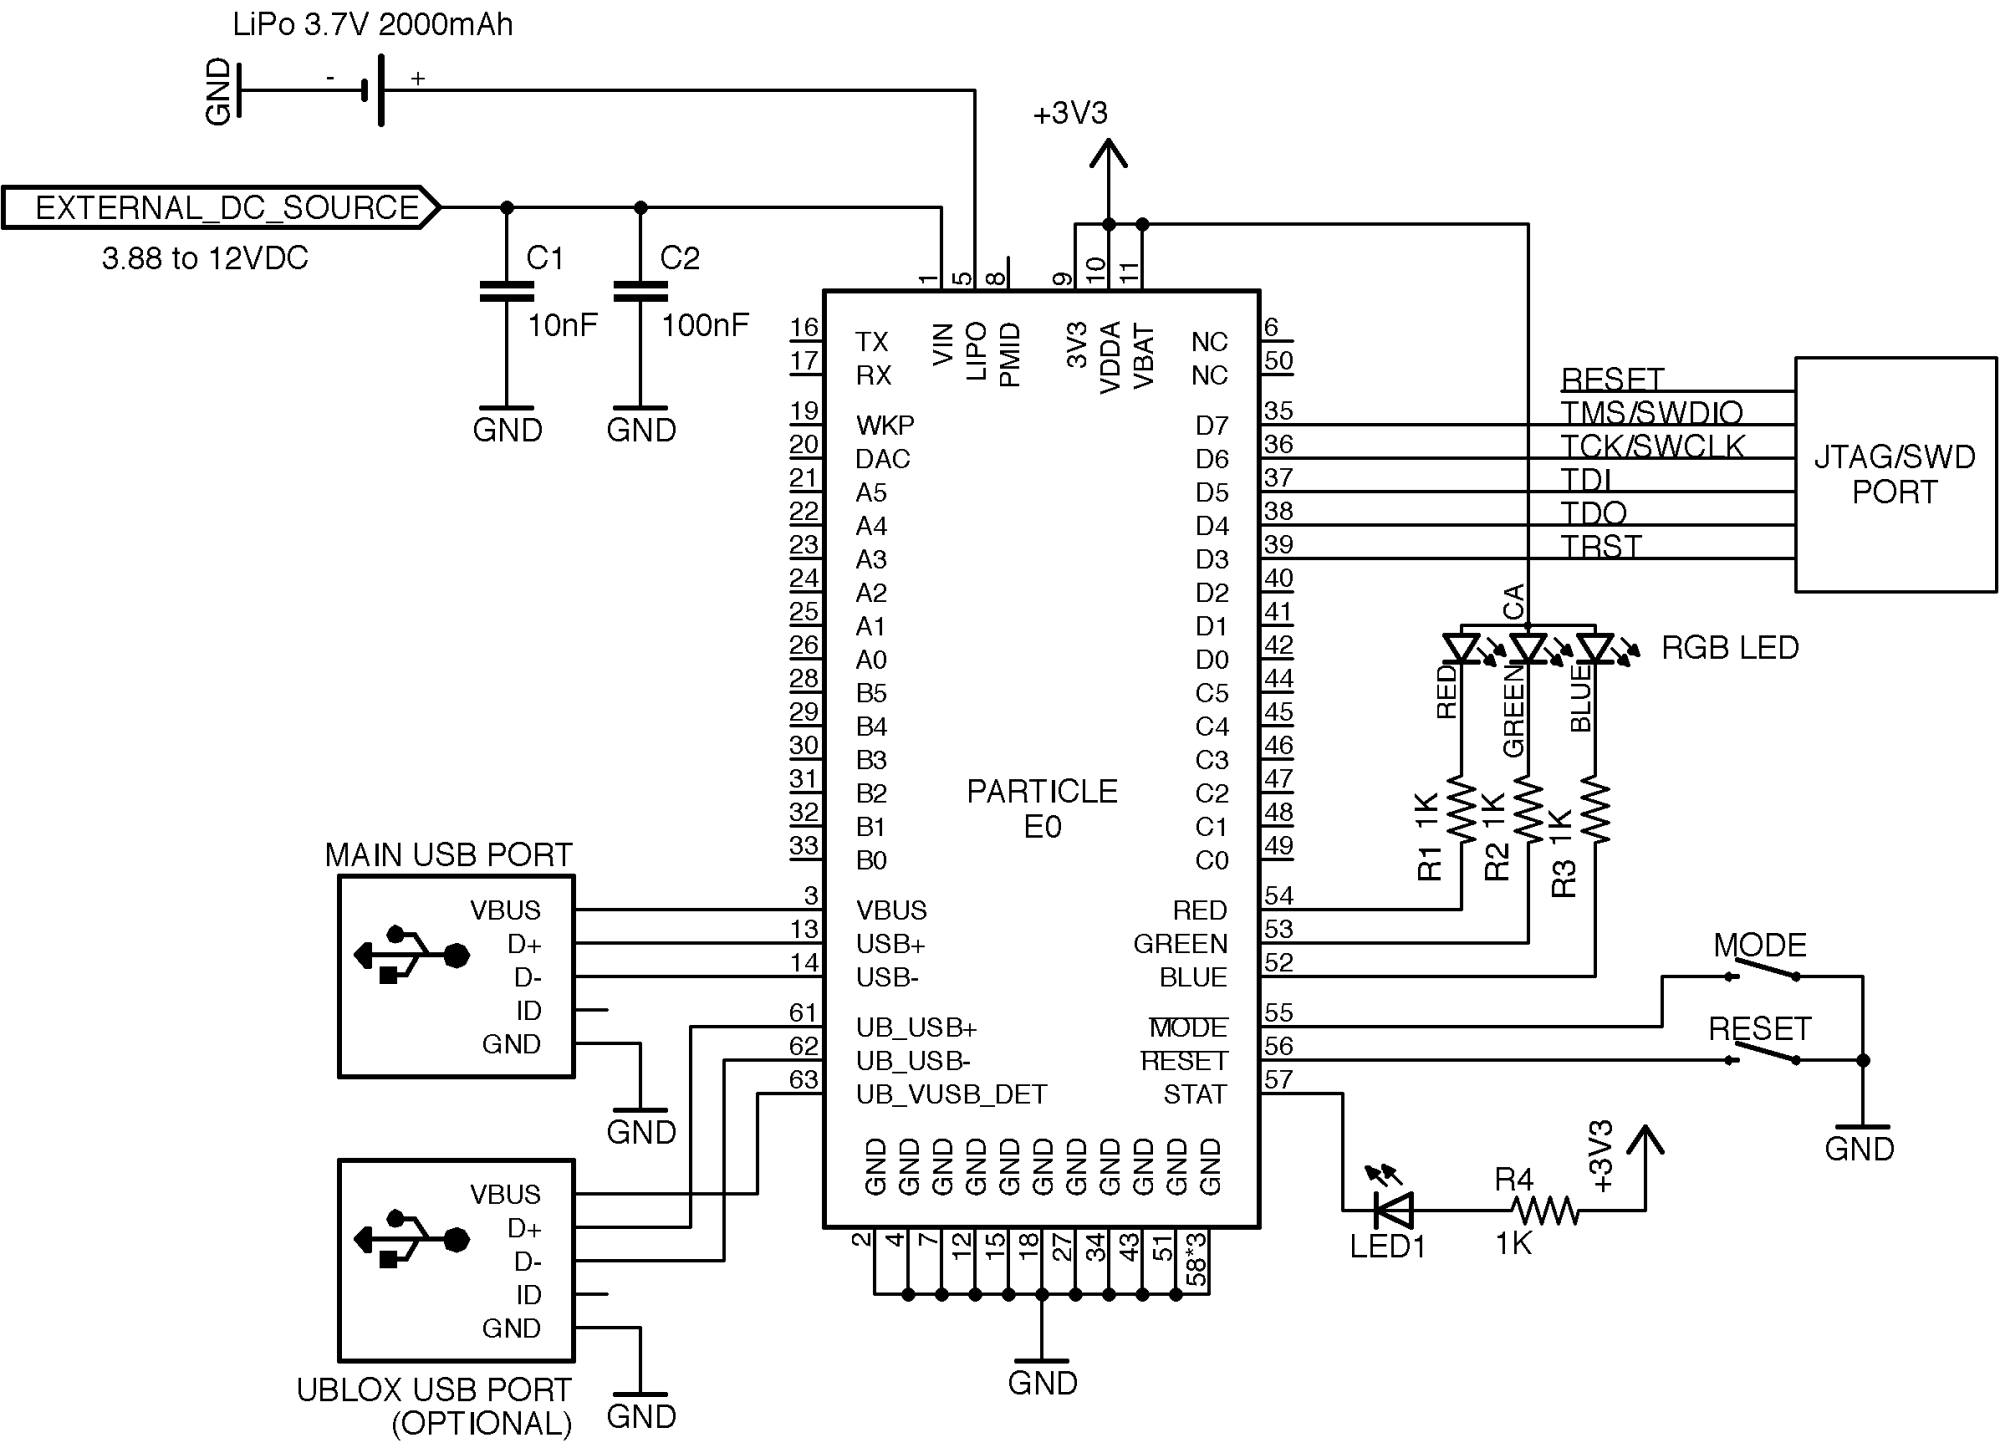 hight resolution of you can also take a look at the schematic and board files of the e series evaluation kit as a reference design available here